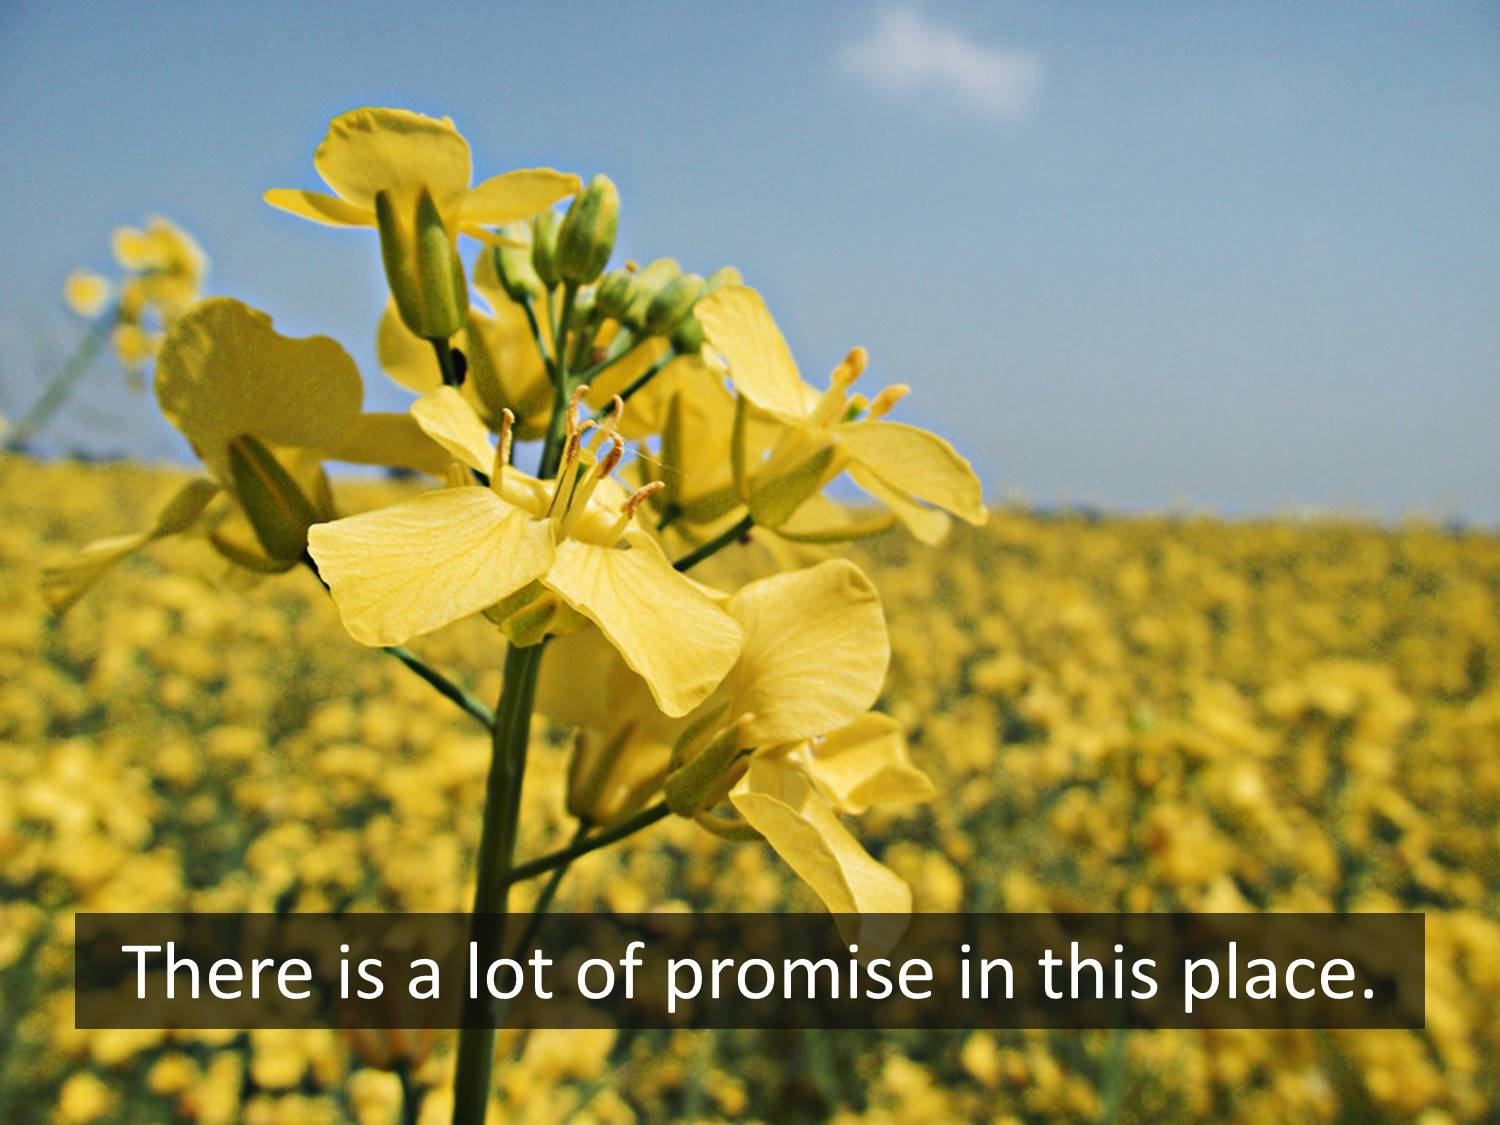 The Promise of the Mustard Seed